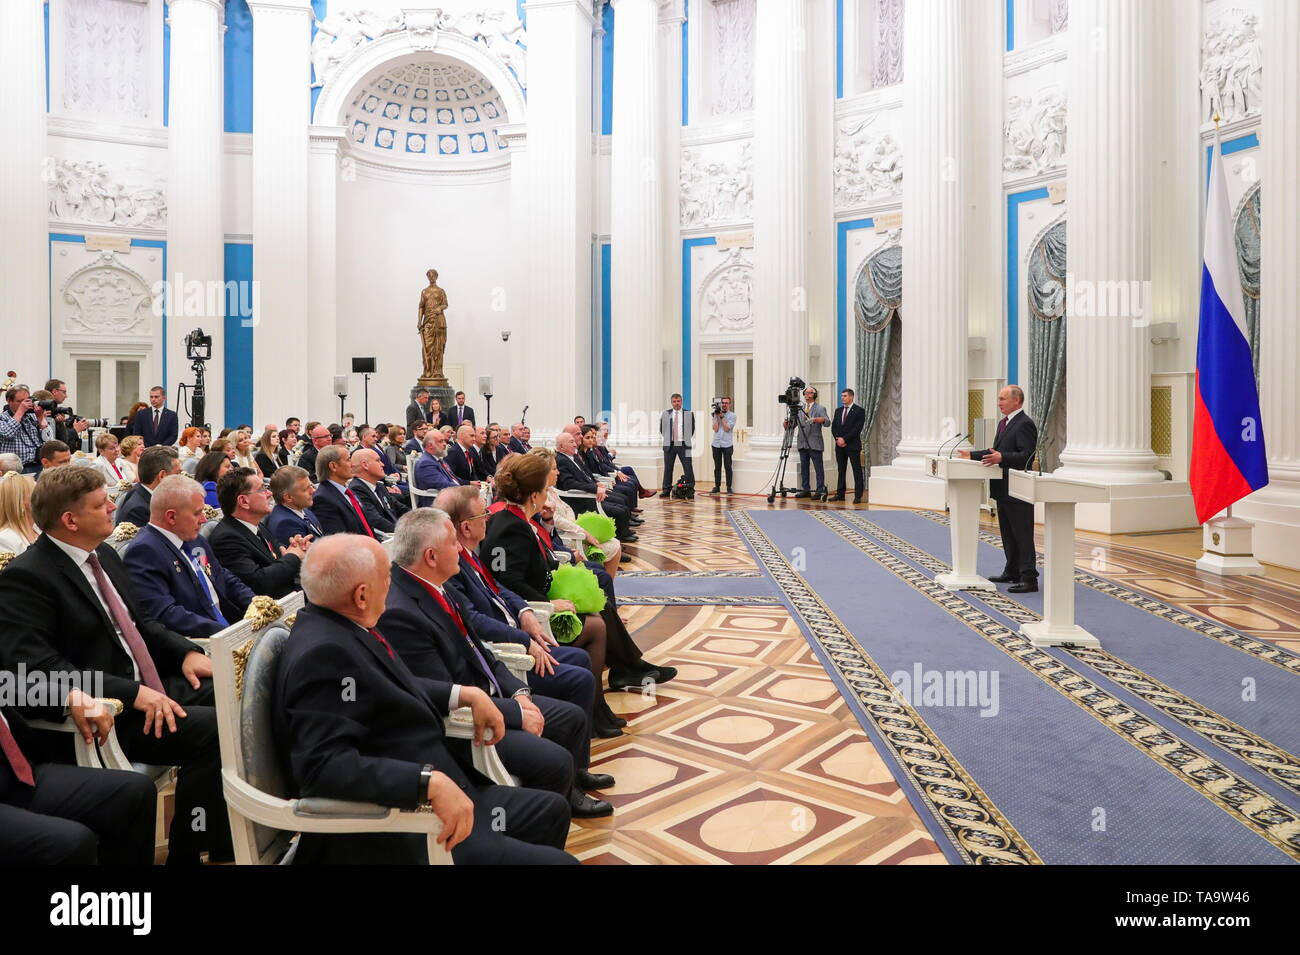 Moscow, Russia. 23rd May, 2019. MOSCOW, RUSSIA - MAY 23, 2019: Russia's President Vladimir Putin (R) attends a ceremony to present state decorations at the Moscow Kremlin. Mikhail Klimentyev/Russian Presidential Press and Information Office/TASS Credit: ITAR-TASS News Agency/Alamy Live News - Stock Image